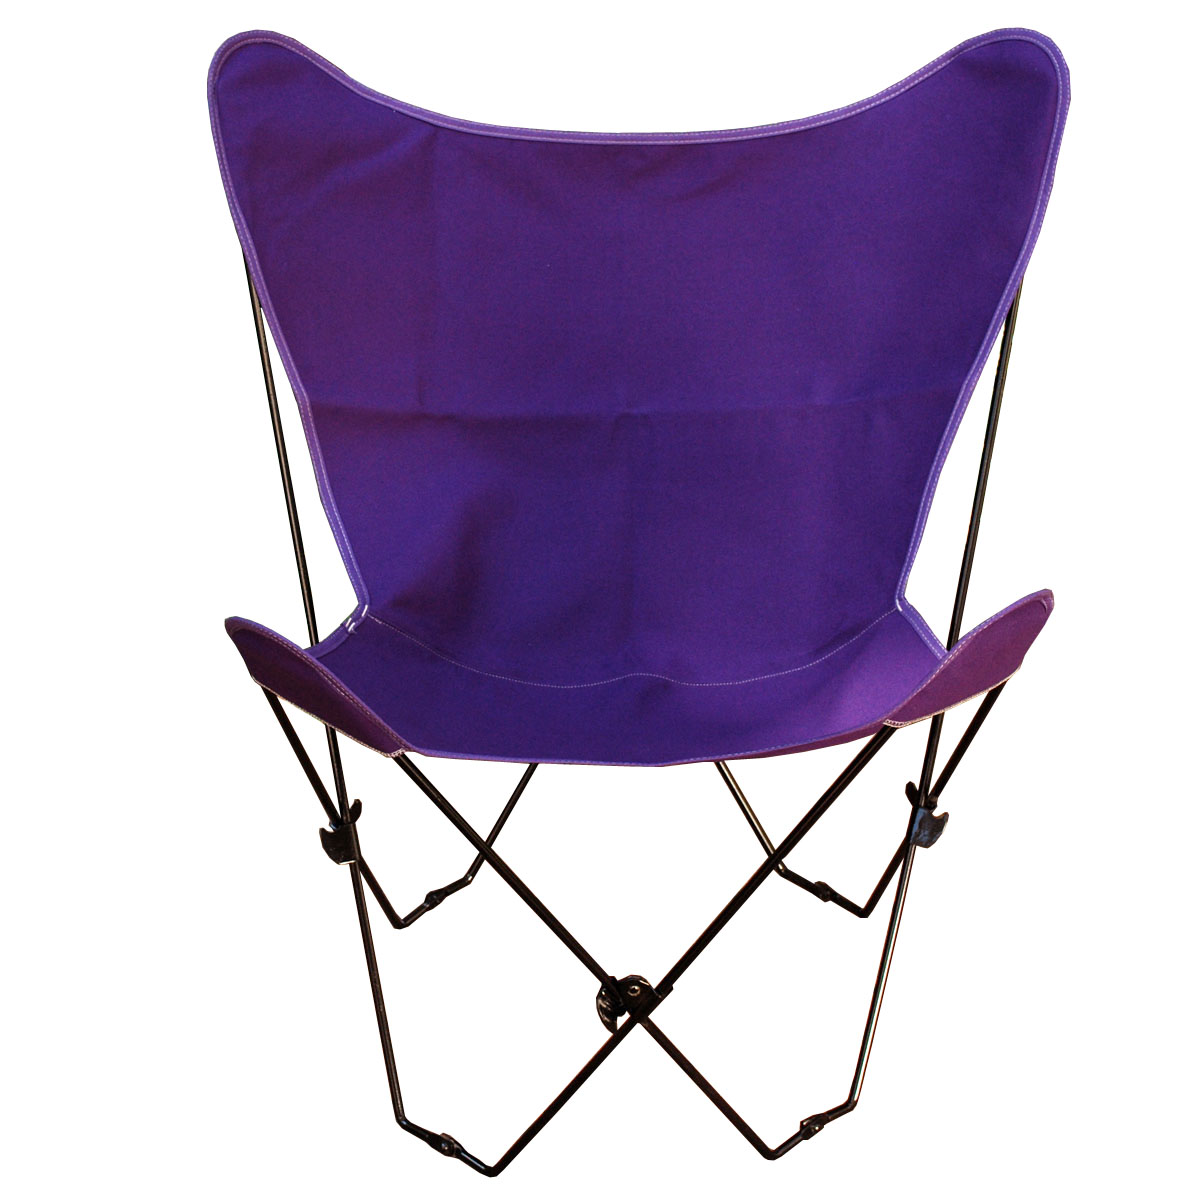 Butterfly Chair and Cover Combination With Black Frame, Purple